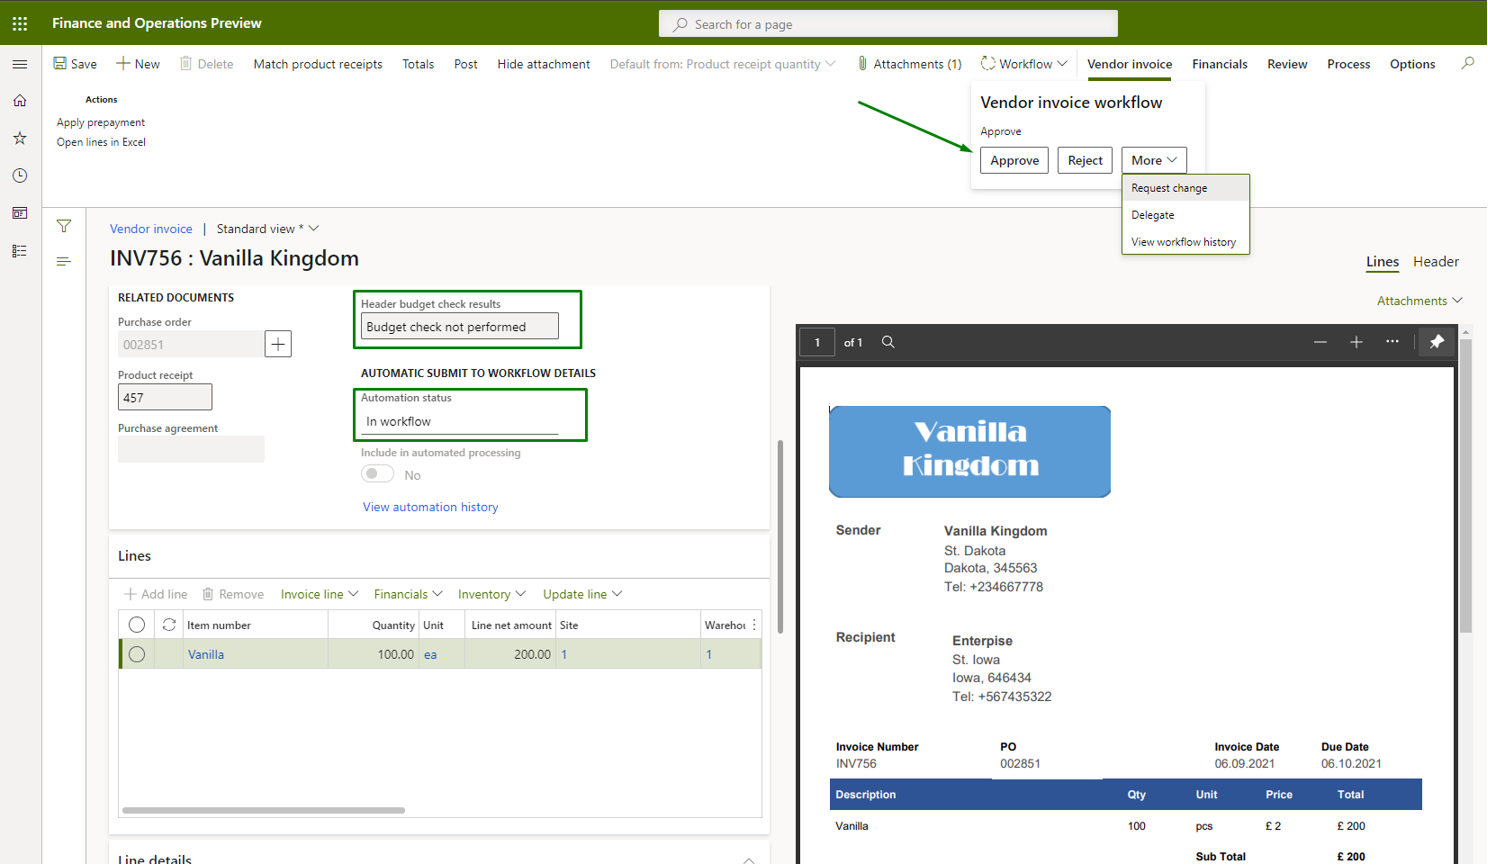 Vendor invoice automation_Pic. 10 – Vendor invoice side by side view (approval)